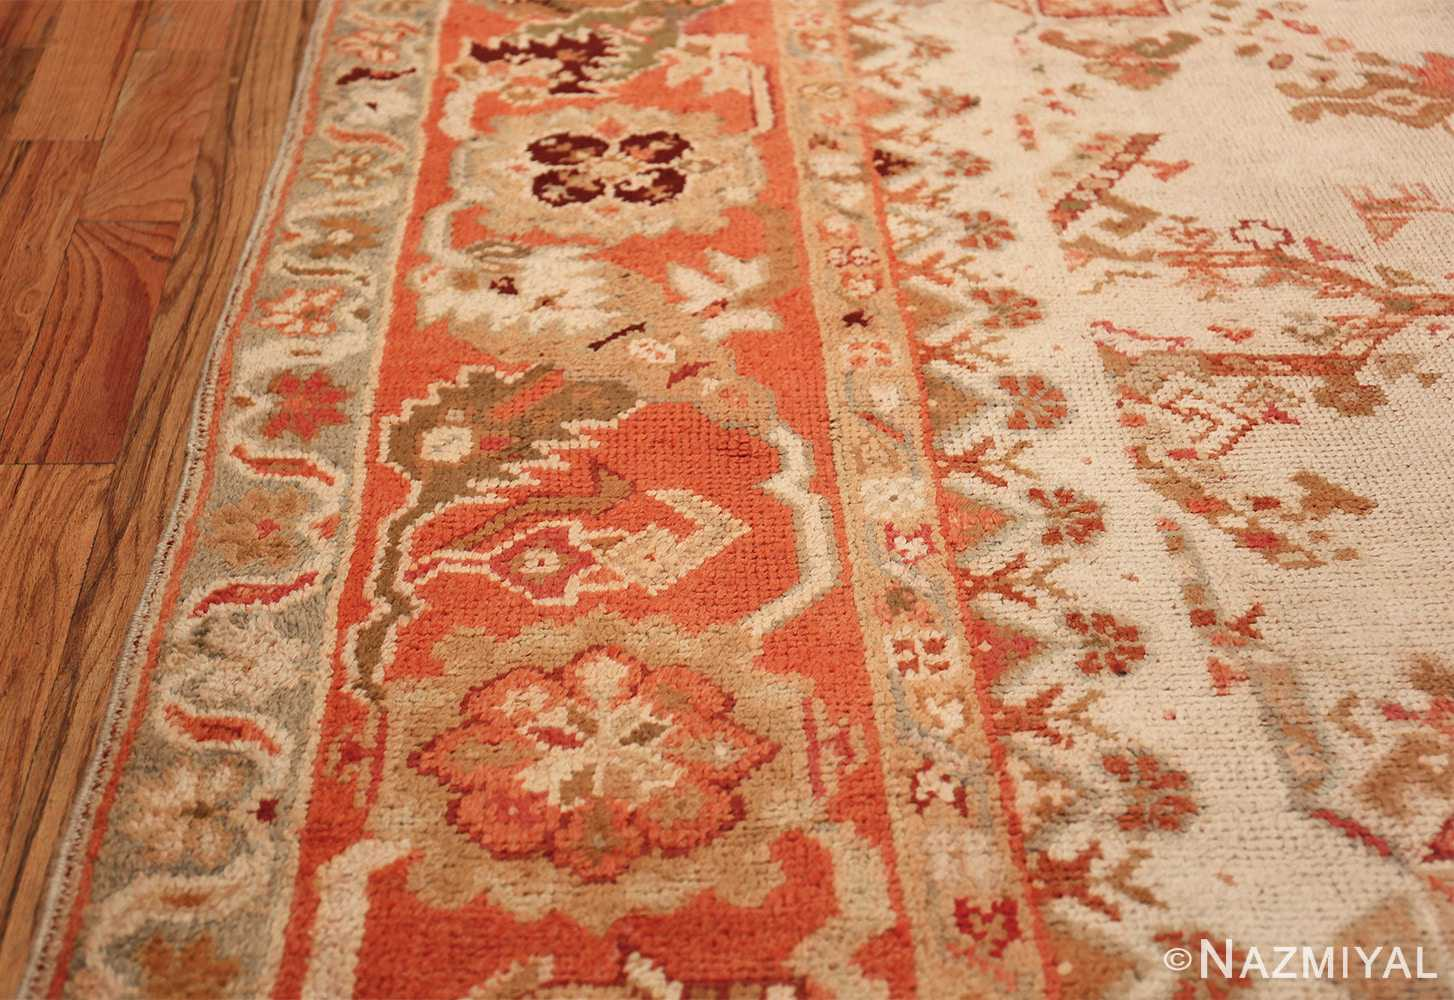 Large Ivory Background Antique Irish Donegal Rug 47566 Orange Border Nazmiyal